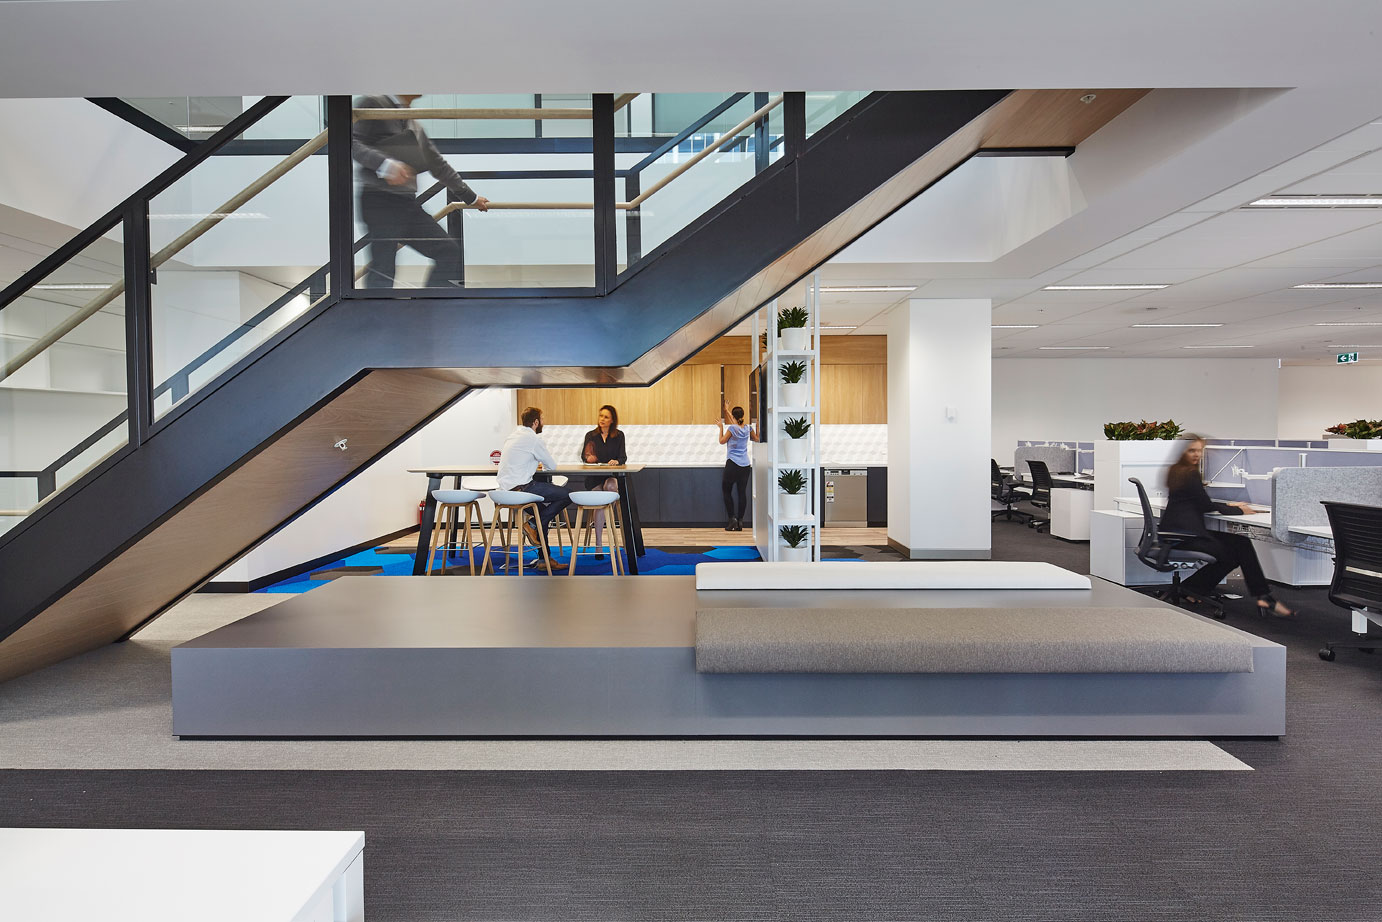 McGrathNicol Sydney Interior Design, Project & Construction Management Project Banner Image by PCG